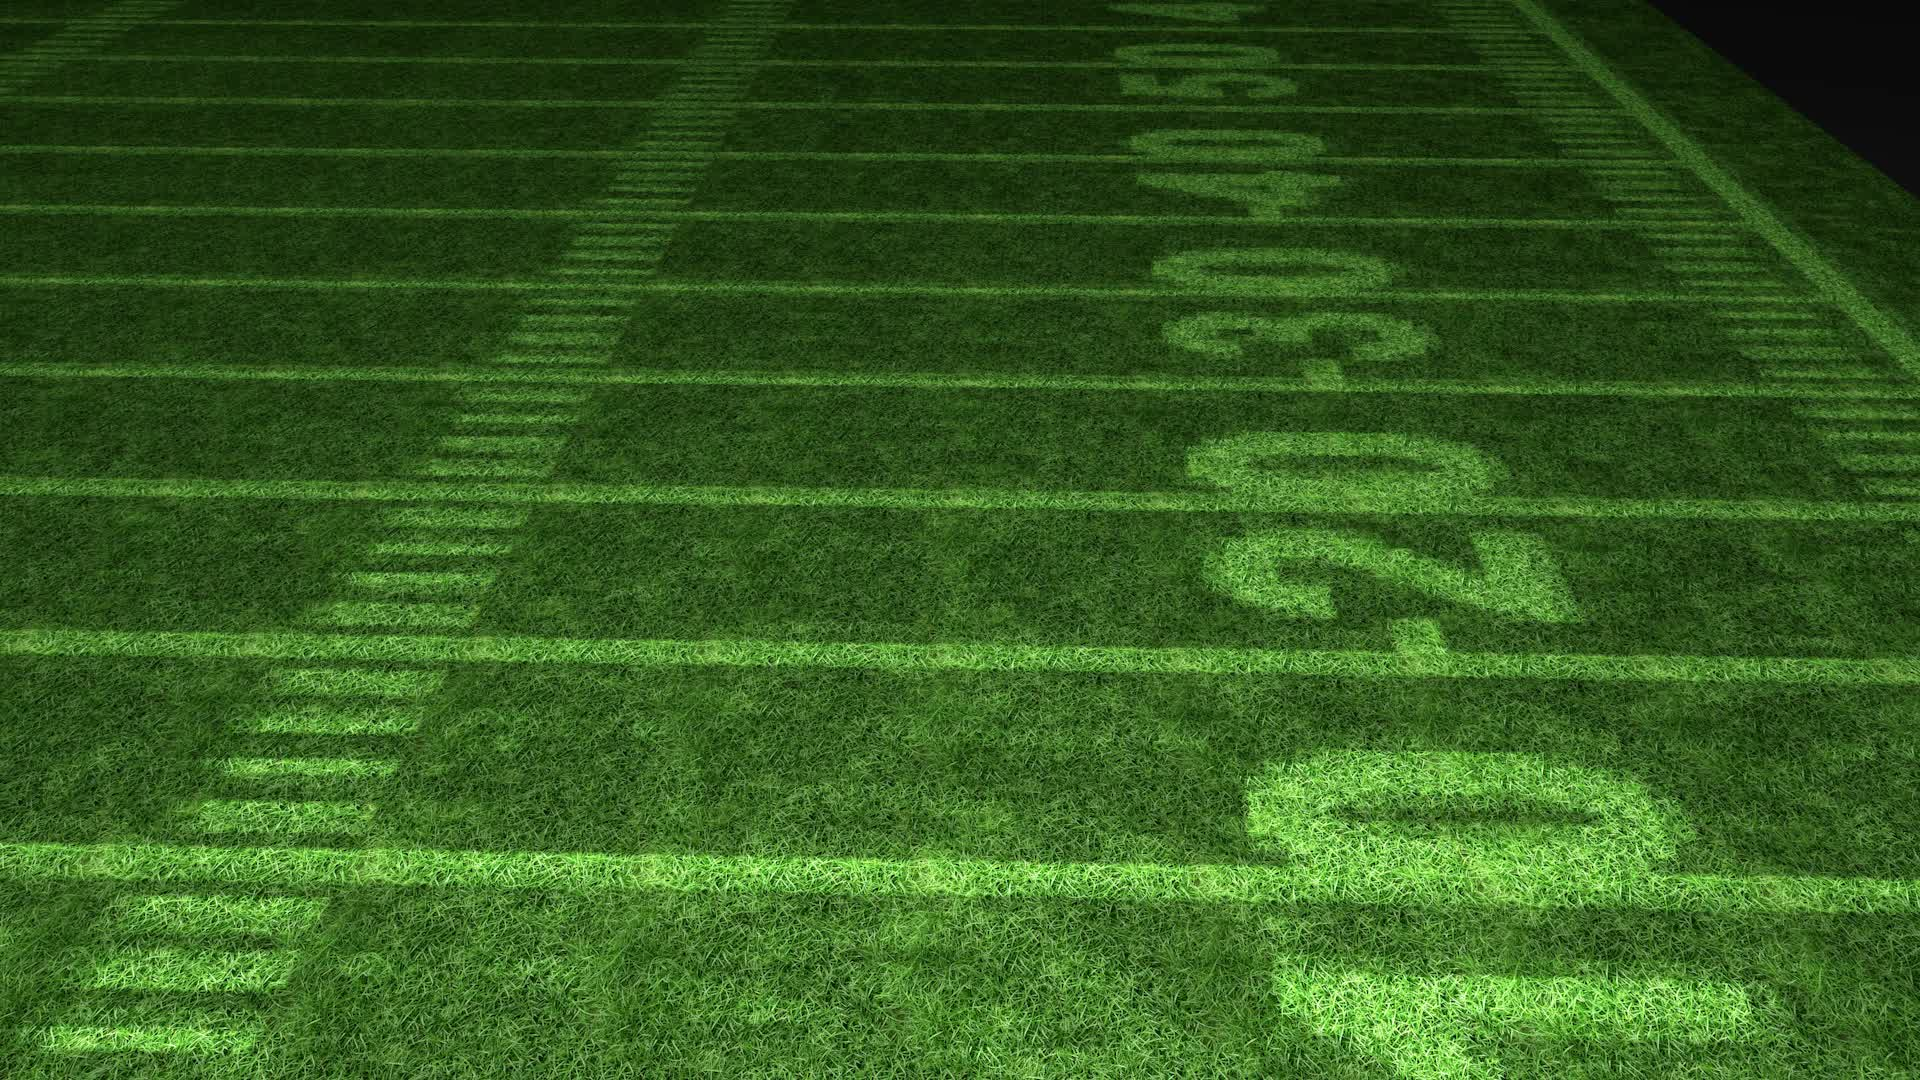 Football Field Backgrounds American football field 1920x1080